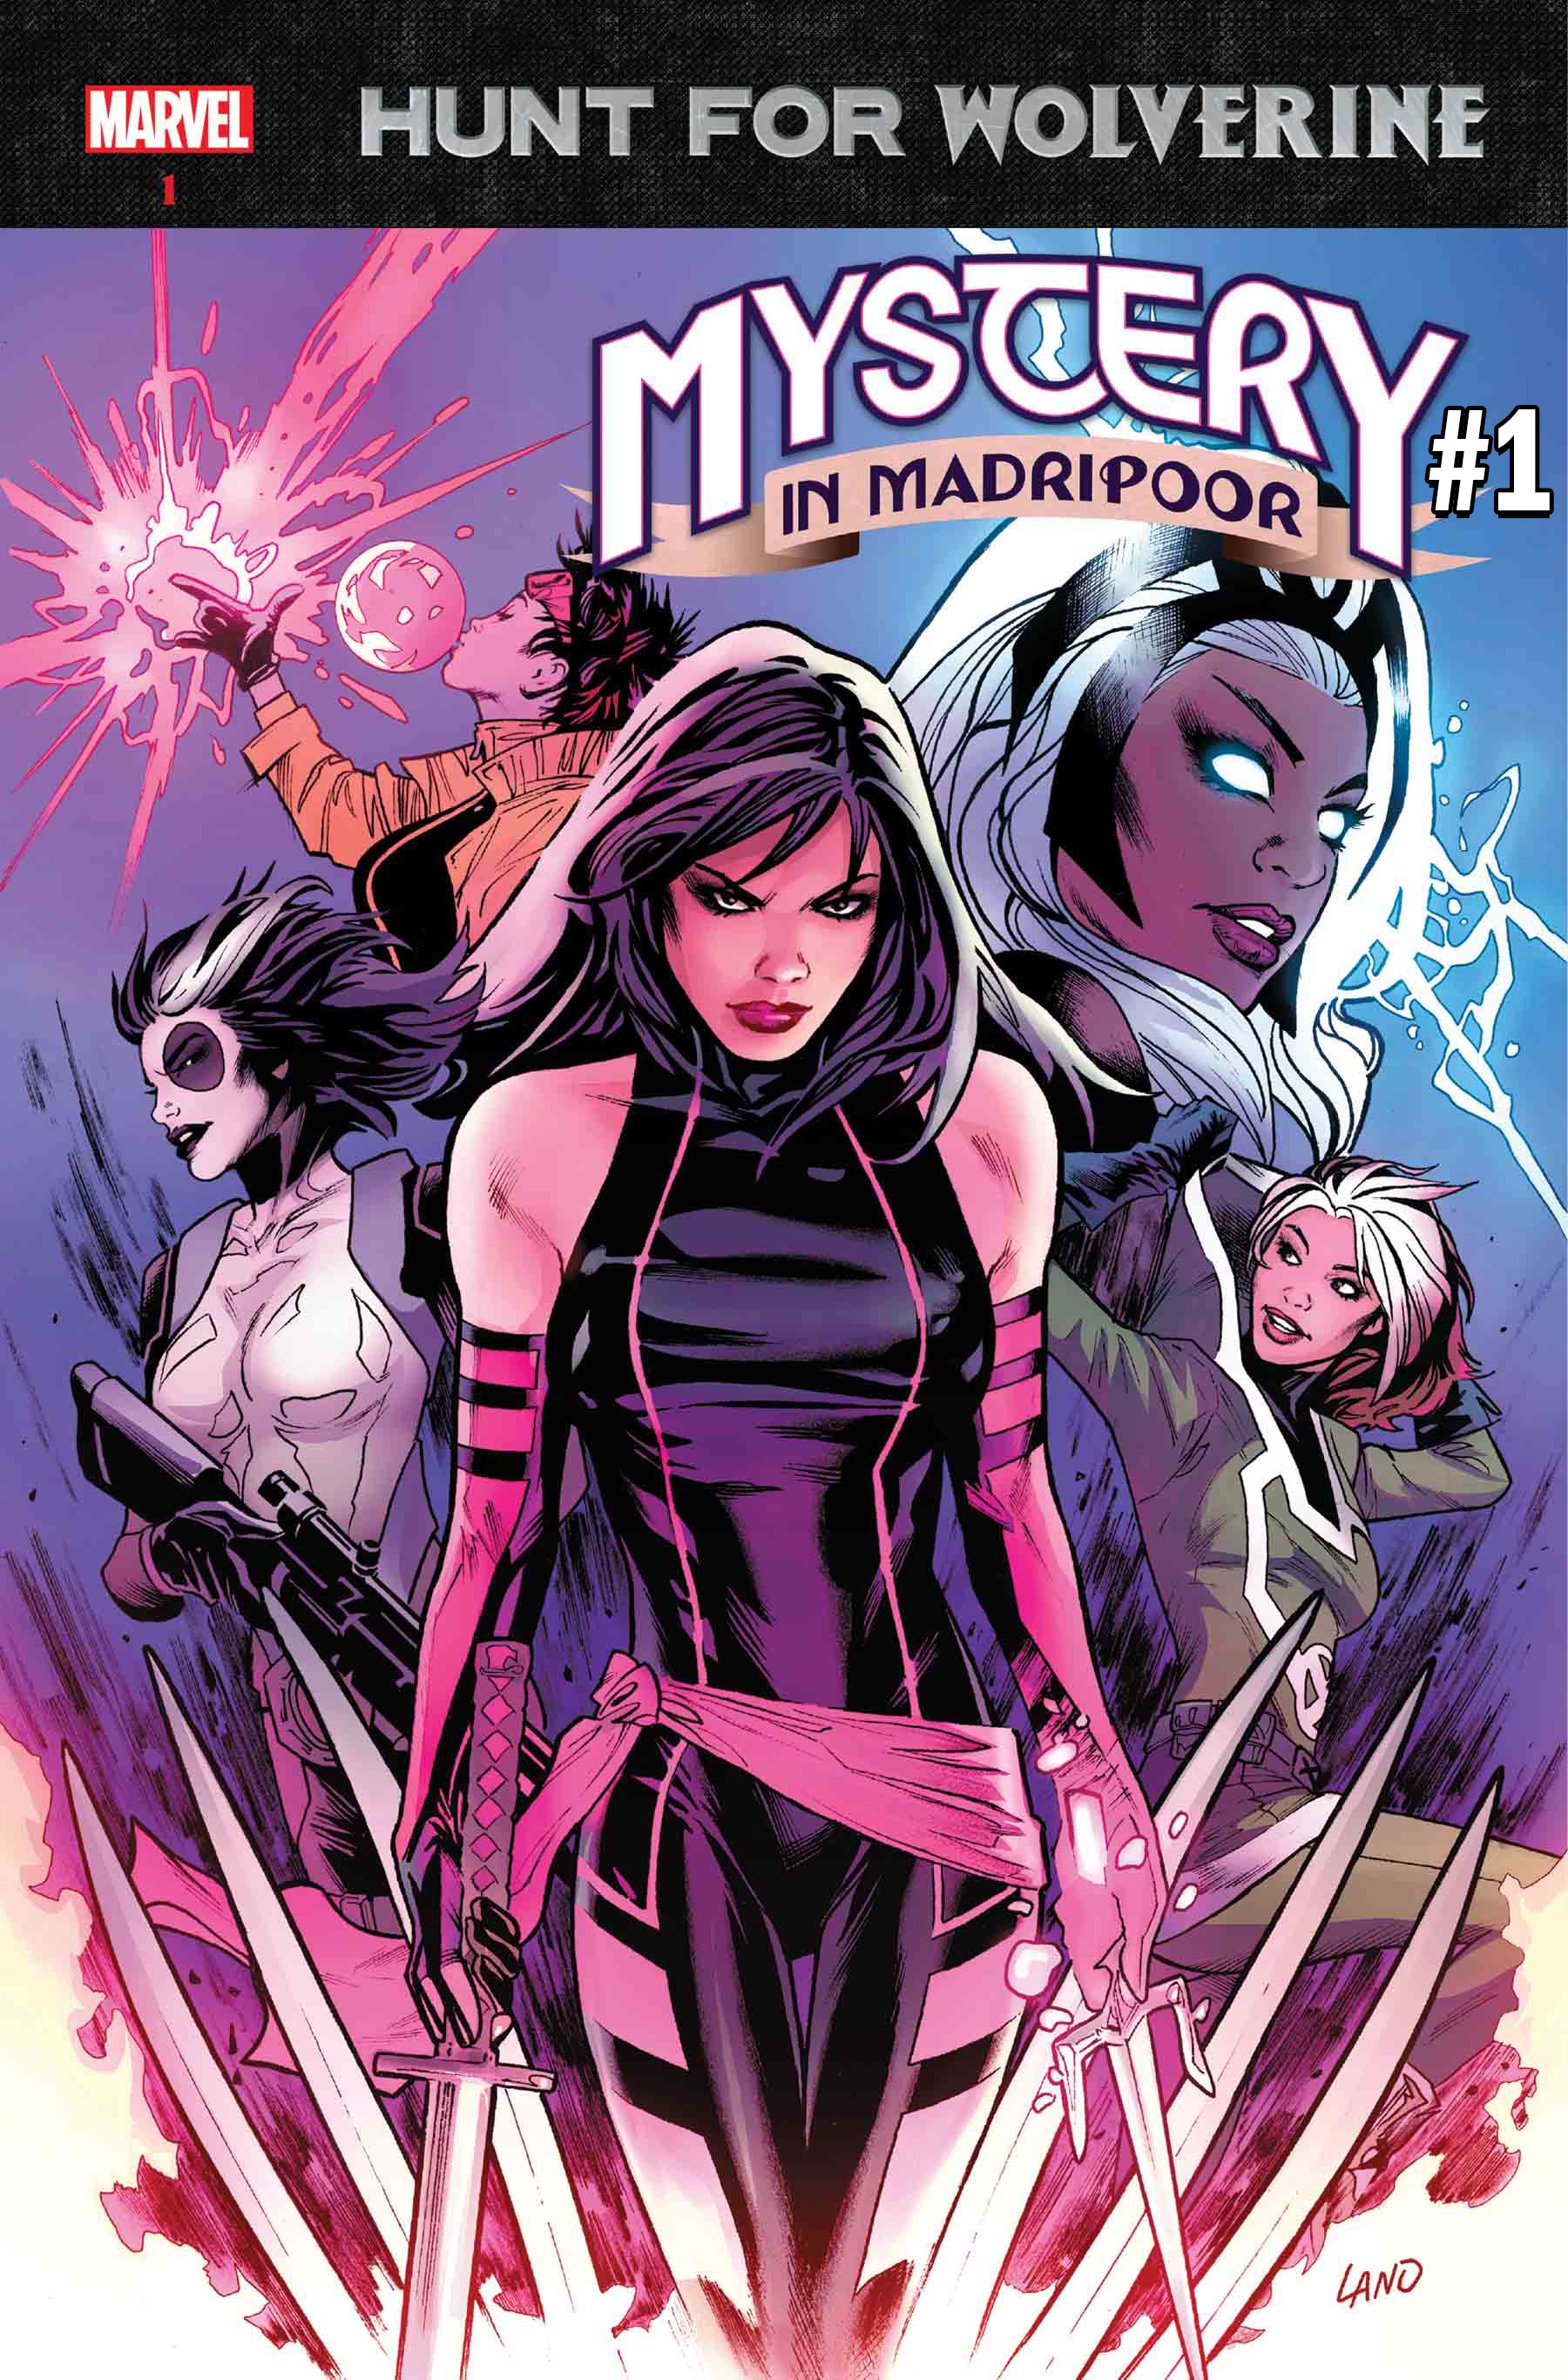 The Hunt for Wolverine Mystery in Madripoor #1